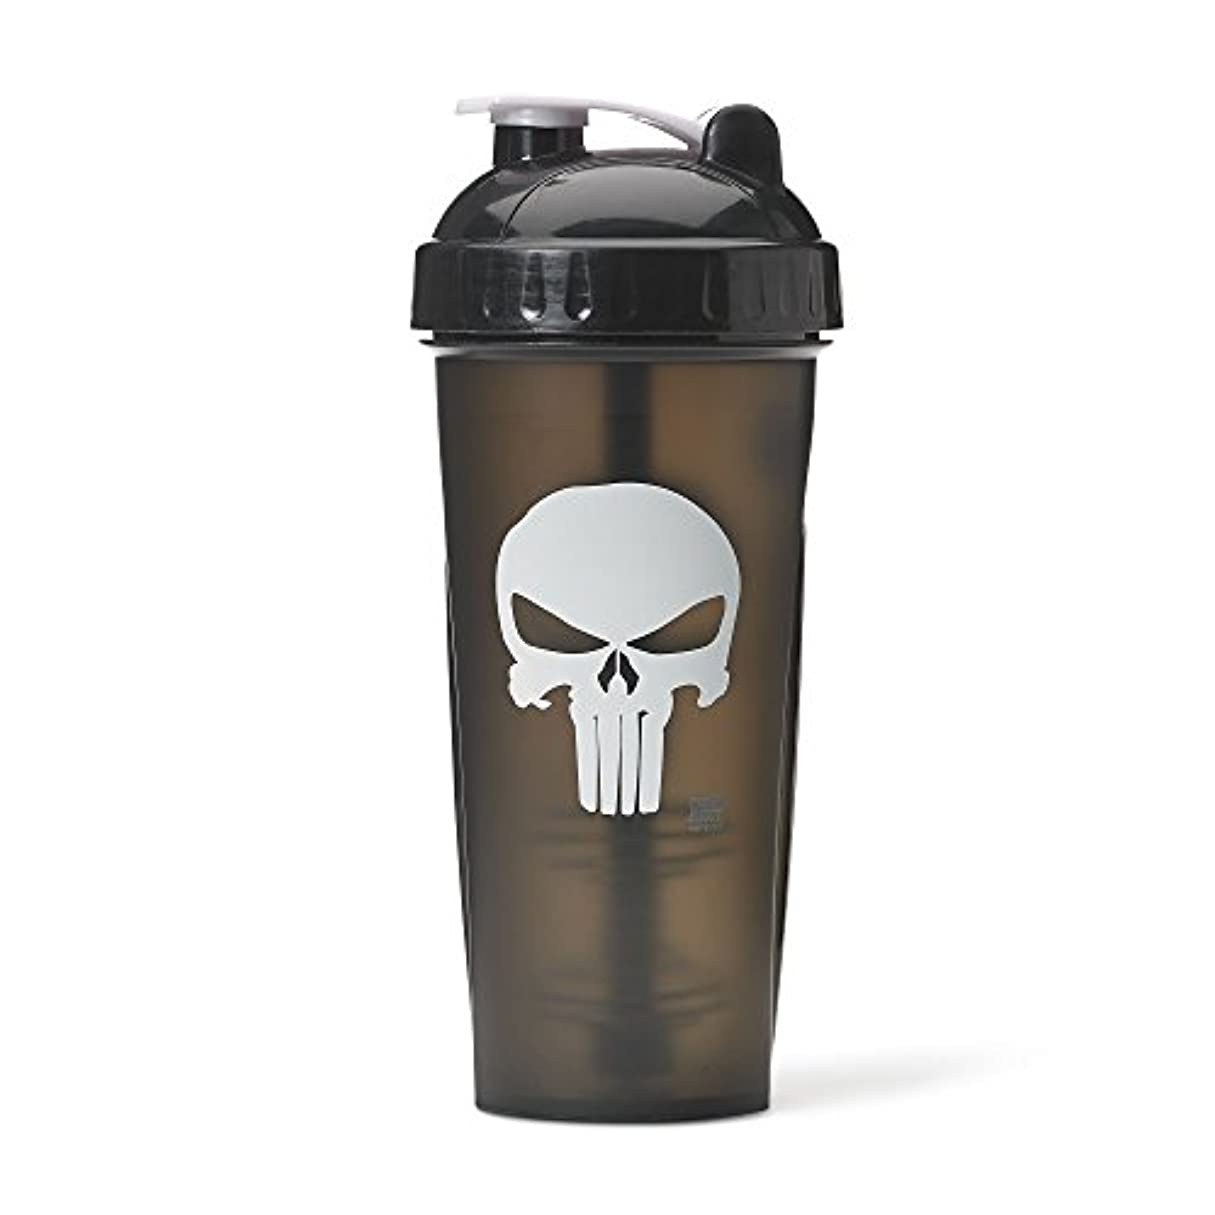 Performa Marvel Shaker - Original Series, Leak Free Protein Shaker Bottle with Actionrod Mixing Technology for...